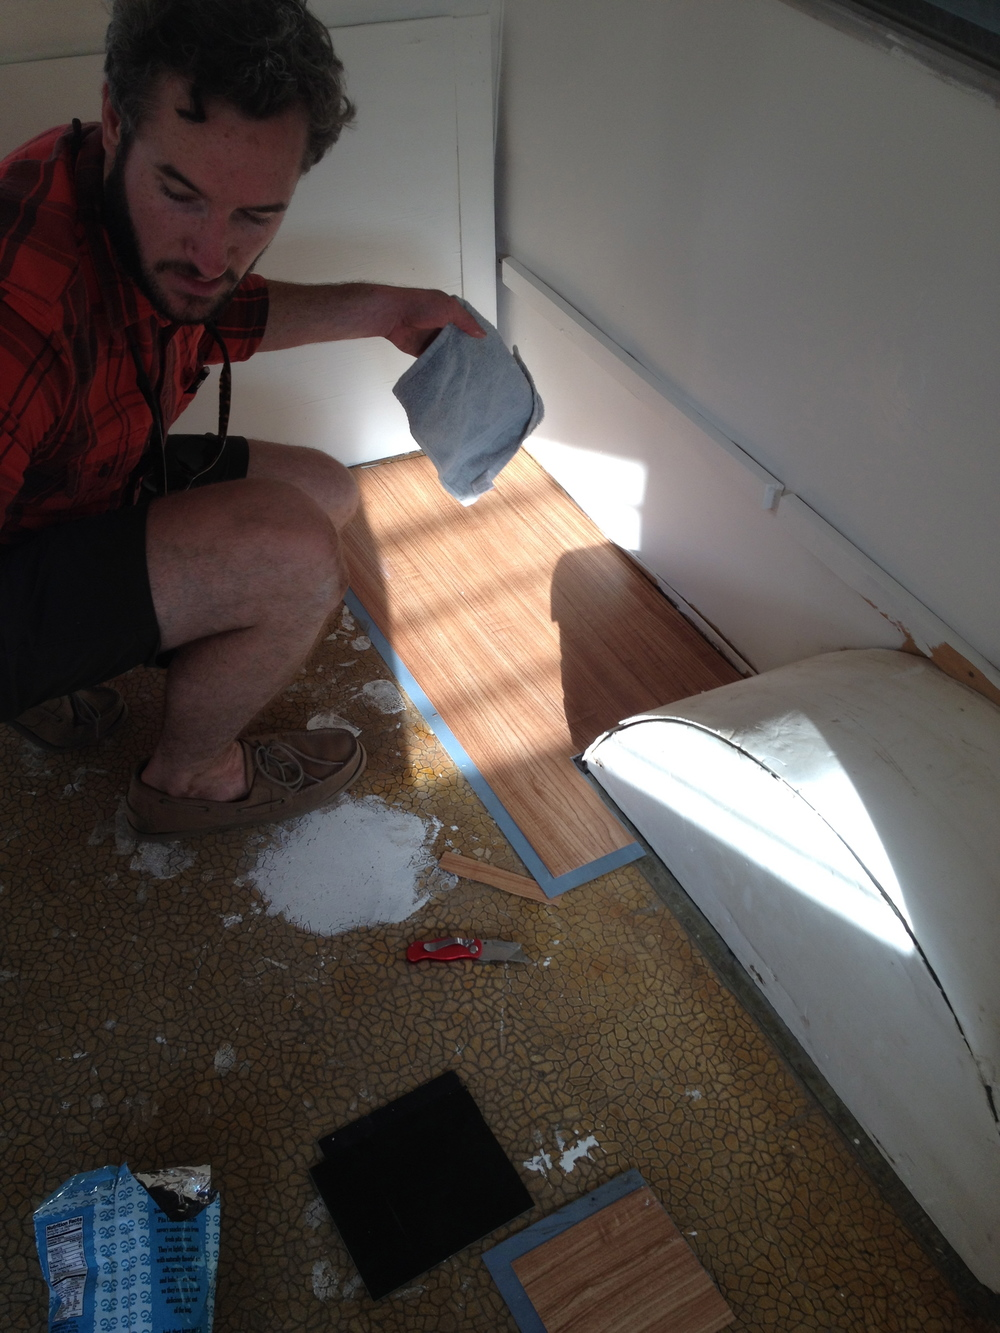 Andrew installs new flooring in the trailer.